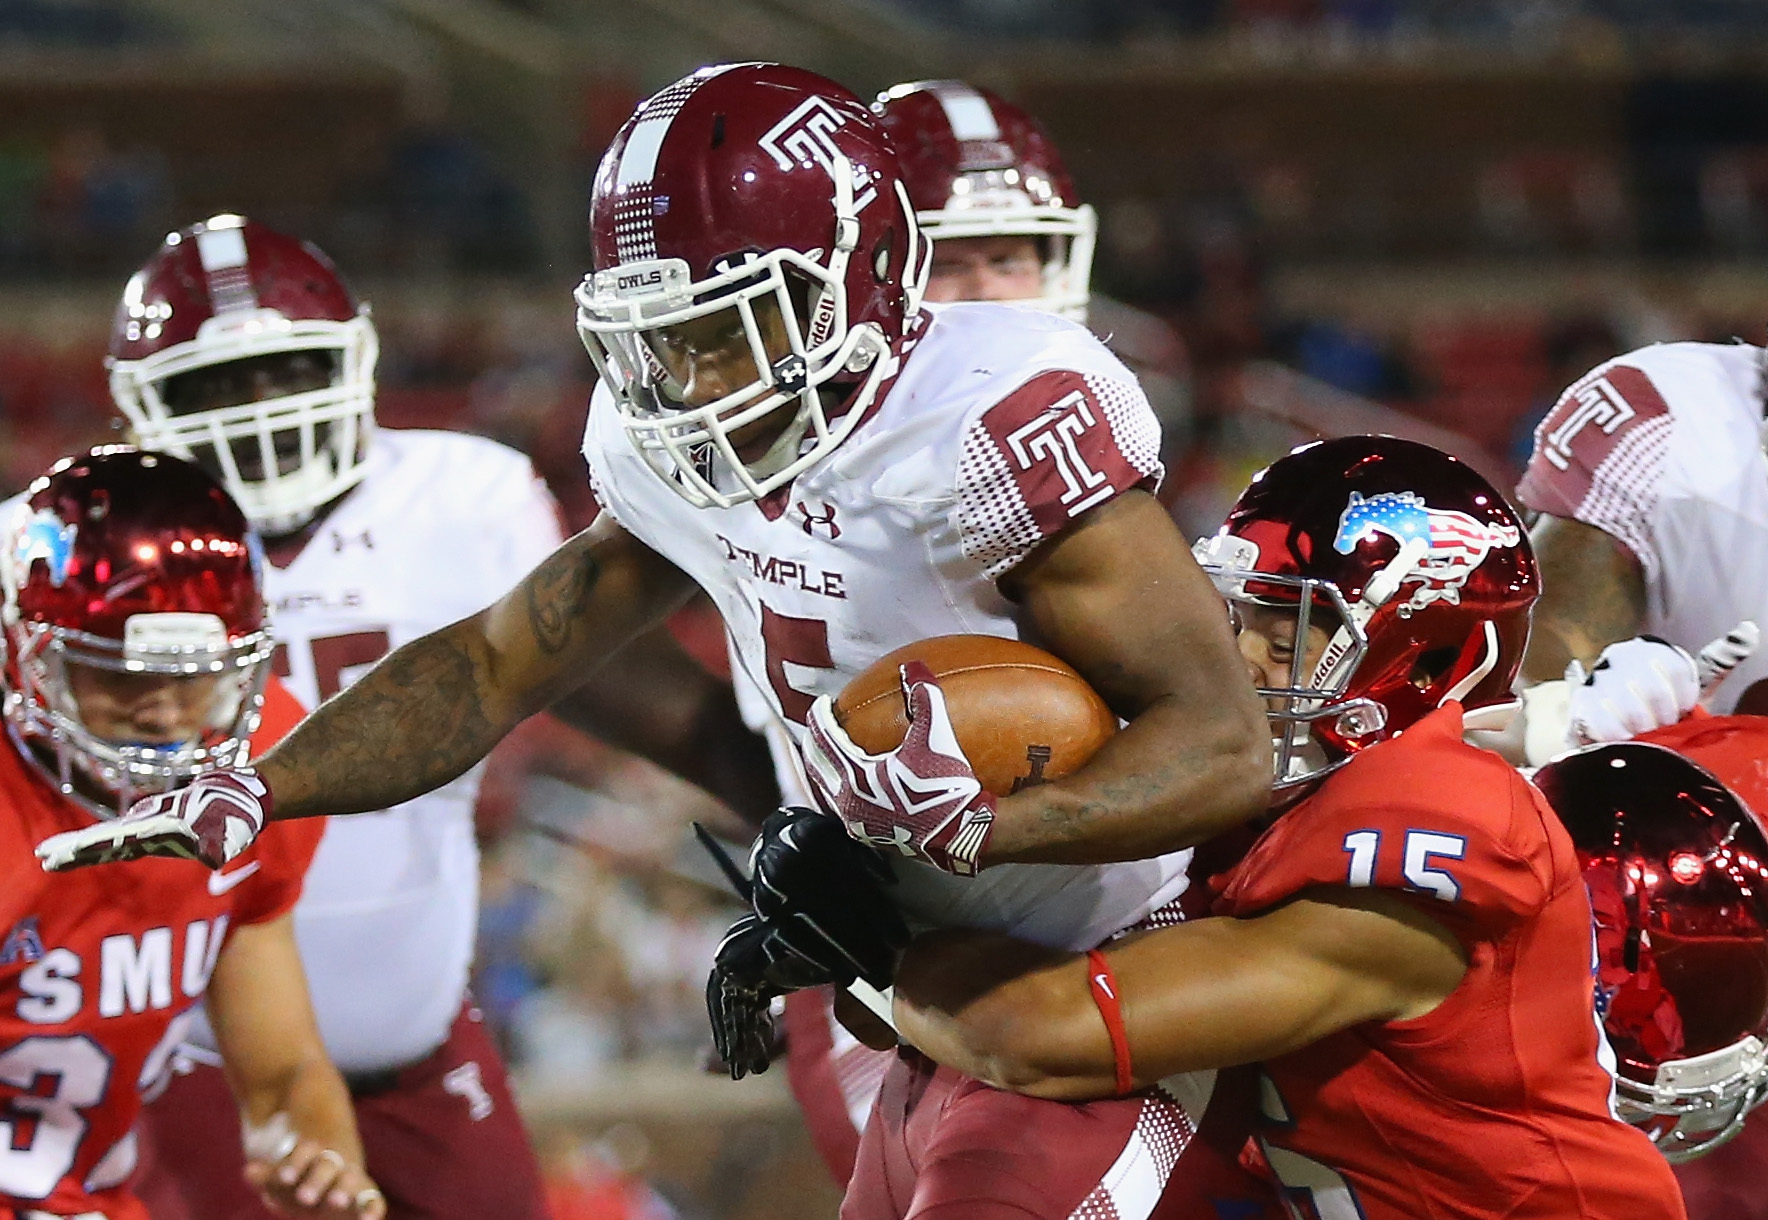 DALLAS, TX - NOVEMBER 06:  Jahad Thomas #5 of the Temple Owls runs the ball against Jordan Wyatt #15 of the Southern Methodist Mustangs in the second half at Gerald J. Ford Stadium on November 6, 2015 in Dallas, Texas.  (Photo by Ronald Martinez/Getty Images)